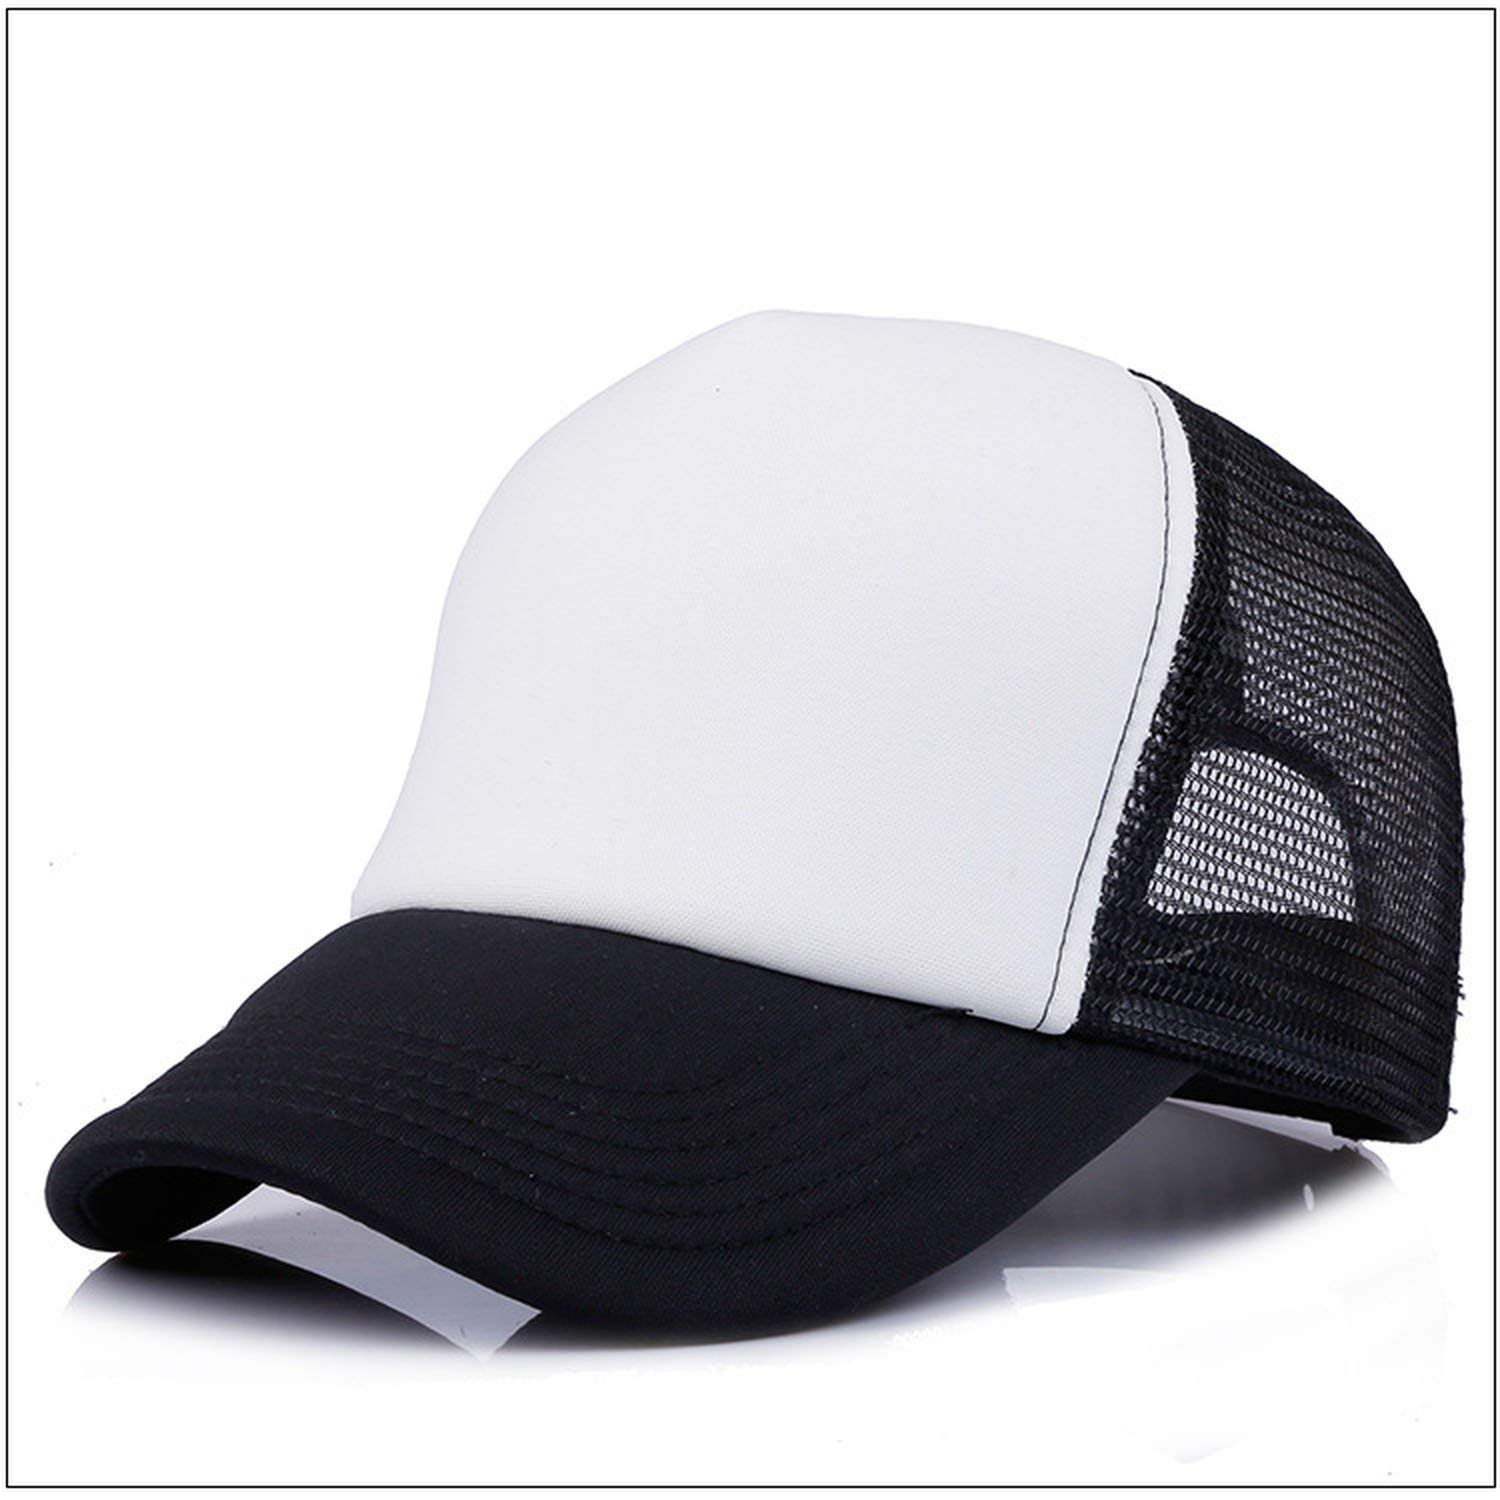 54-58cm Custom 100/% Polyester Baseball Cap Blank Mesh Adjustable Hat Adult Children Kids,02,Adult